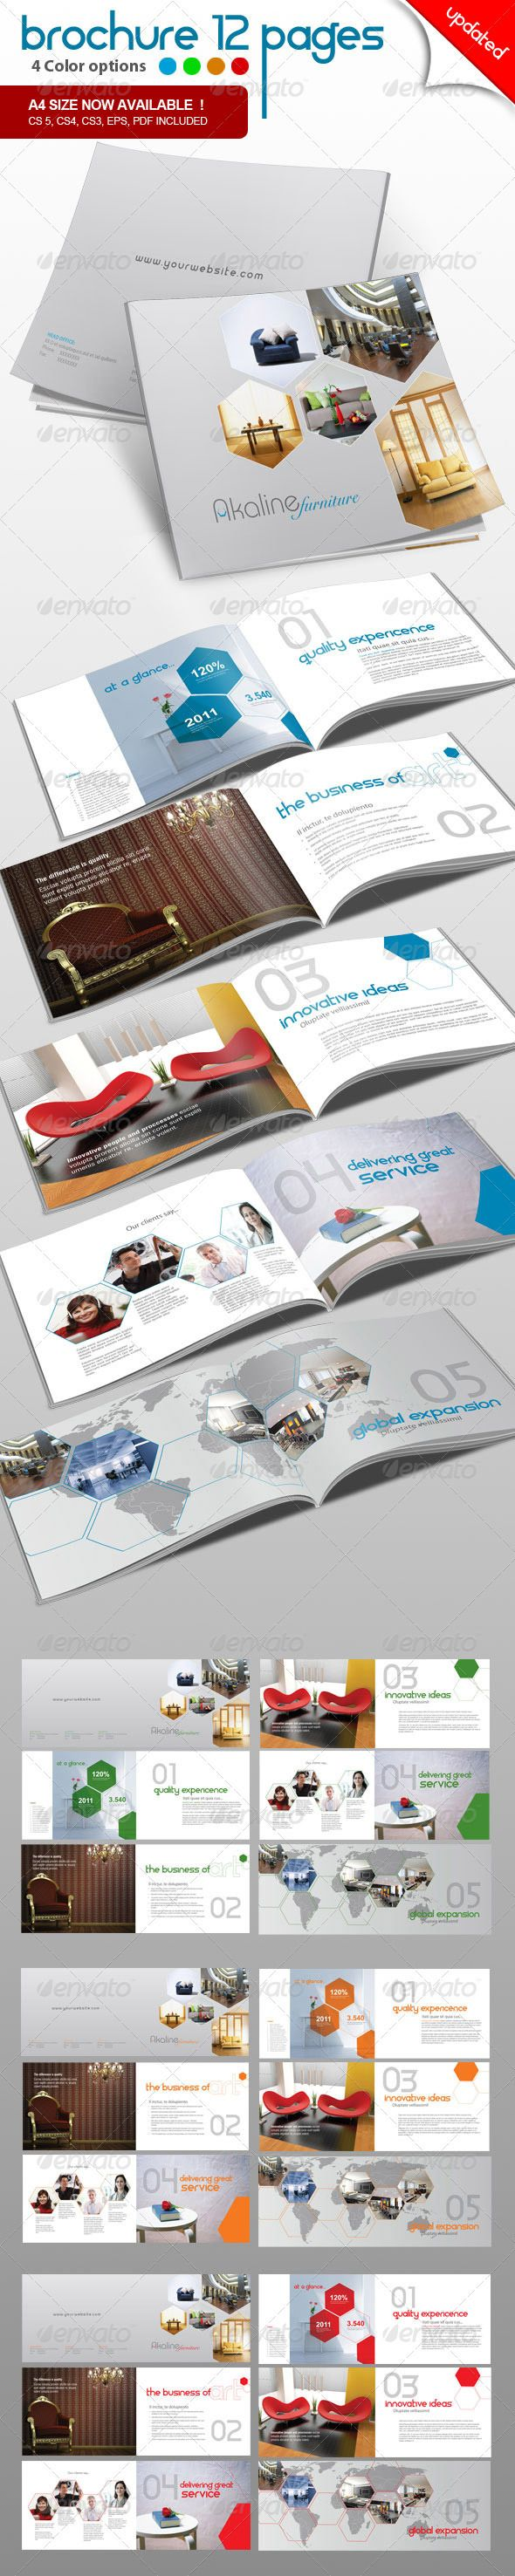 Corporate Brochure 12 pages  - GraphicRiver Item for Sale